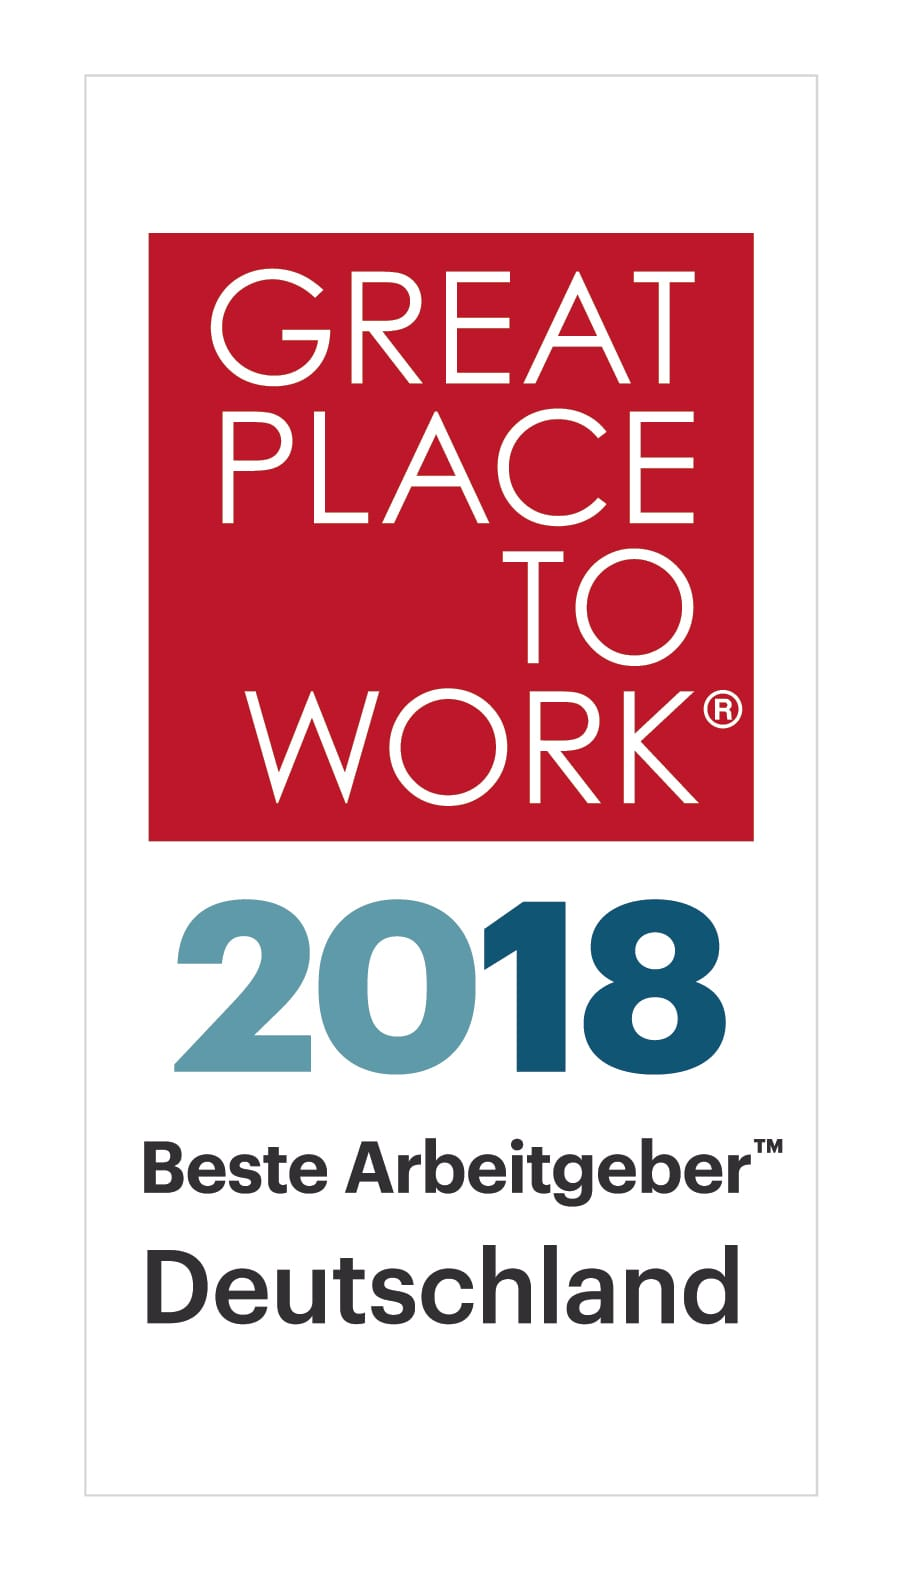 ModuleWorks_great_place_to_work_2018_NRW